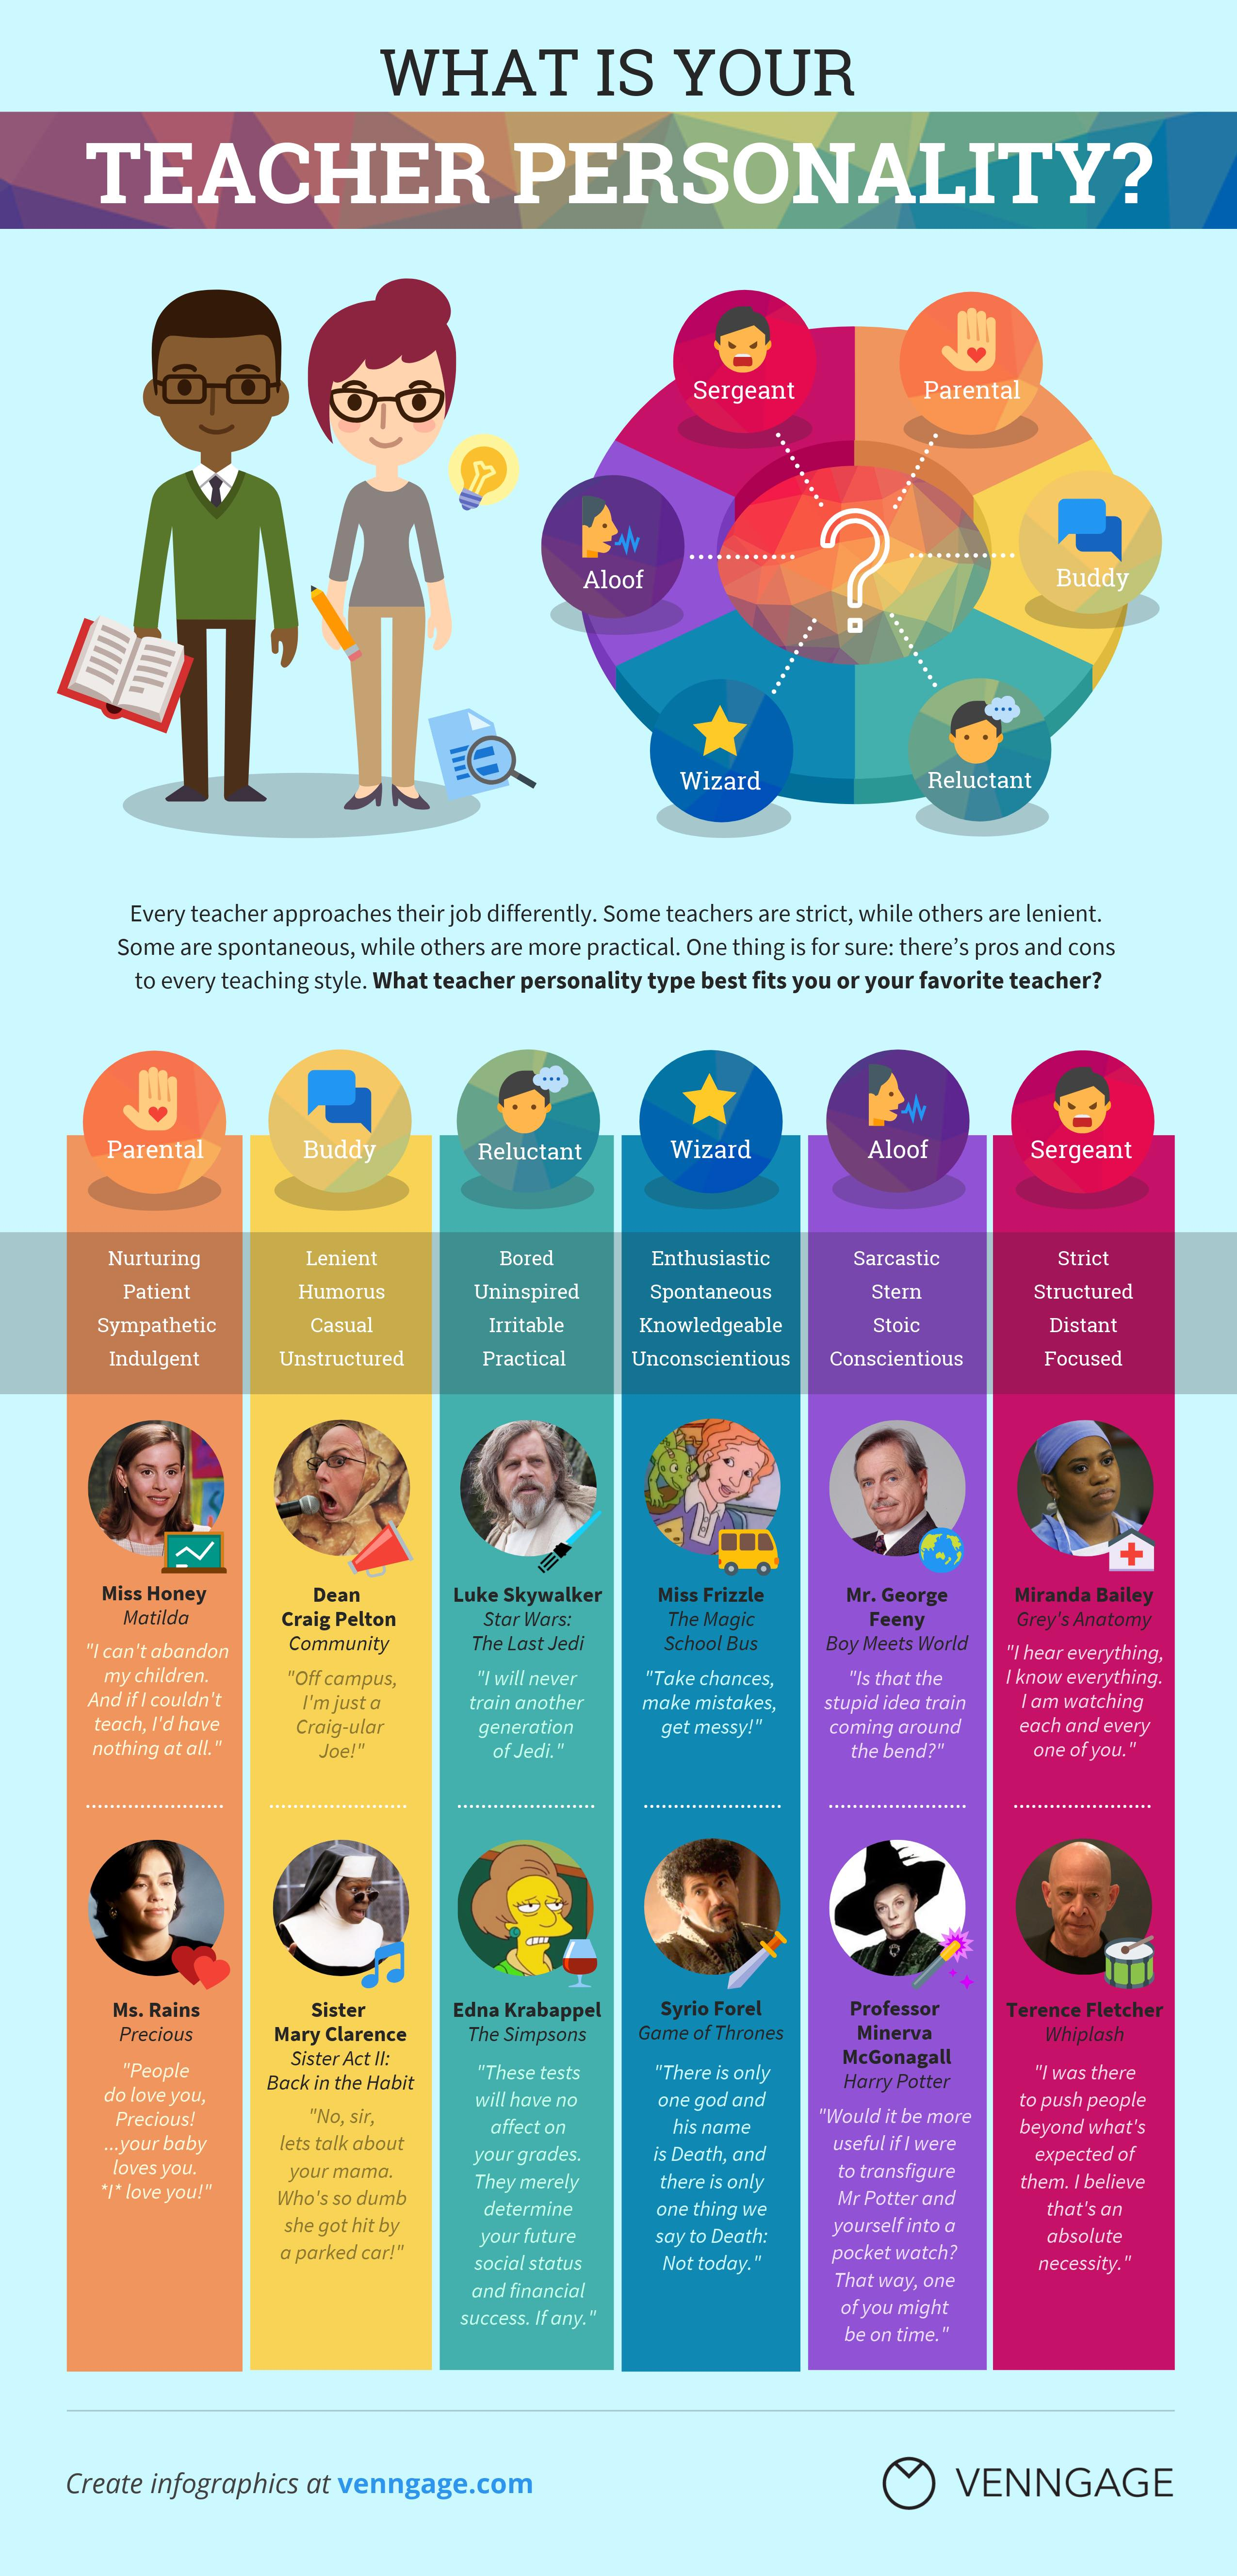 What Is Your Teacher Personality Type? [INFOGRAPHIC] - Venngage